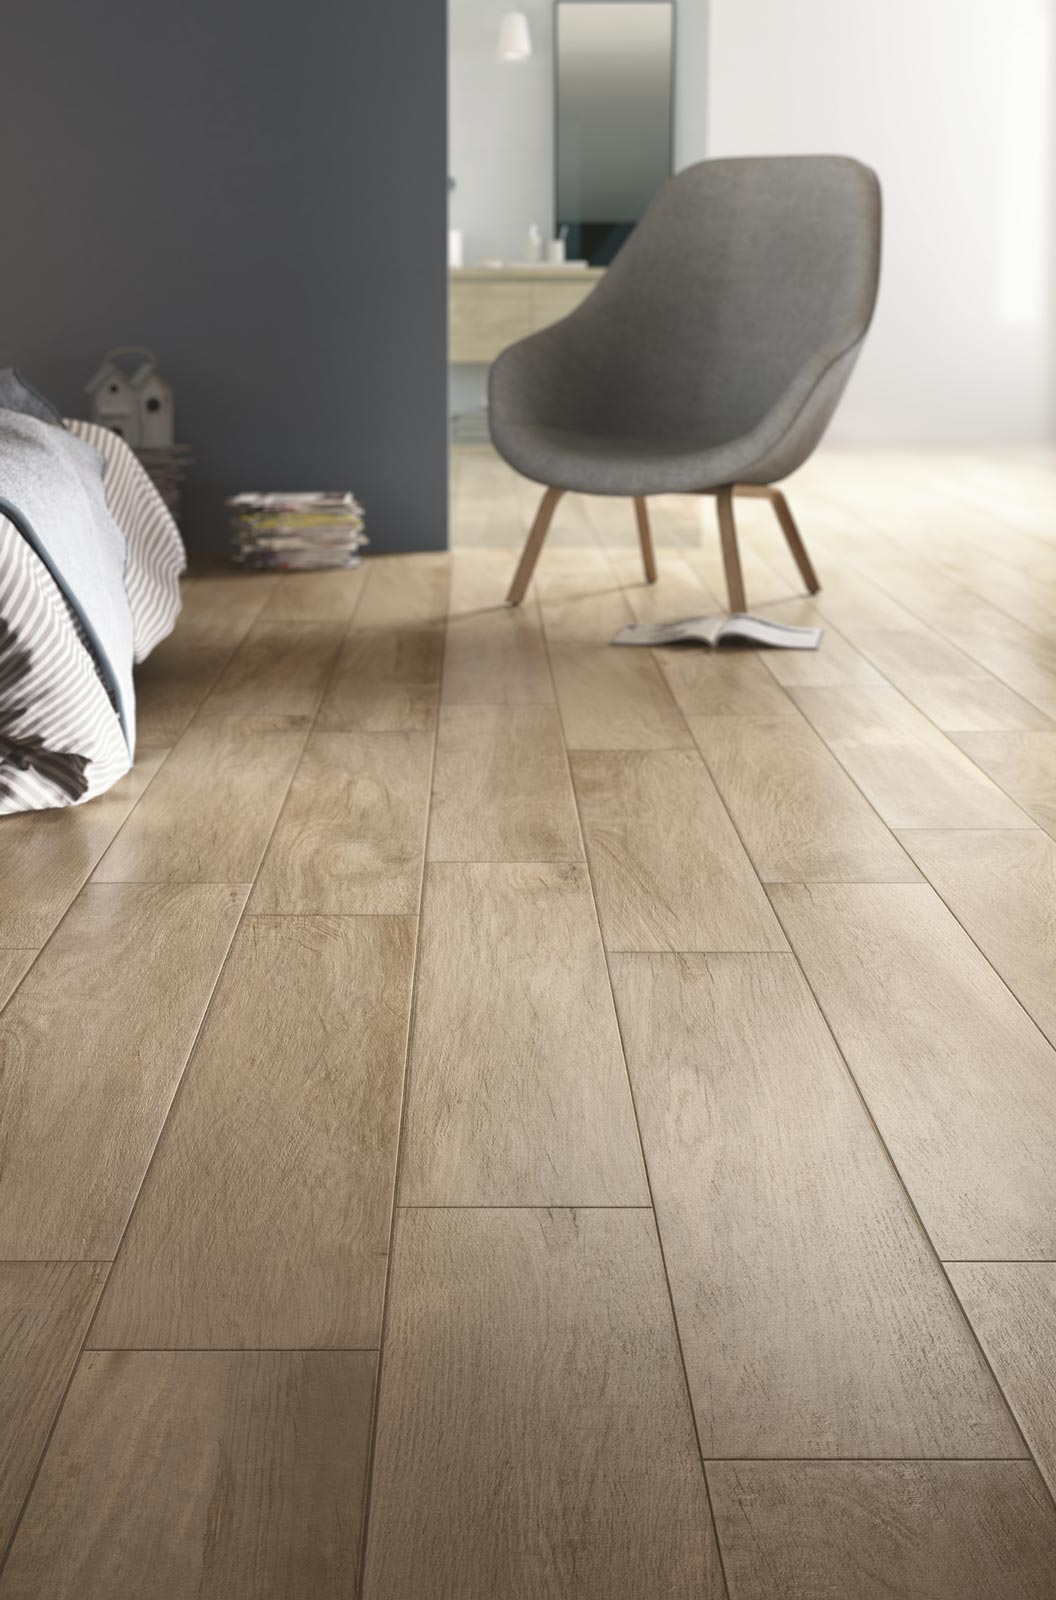 Woodplace wood effect porcelain stoneware ragno for Carrelage 50x50